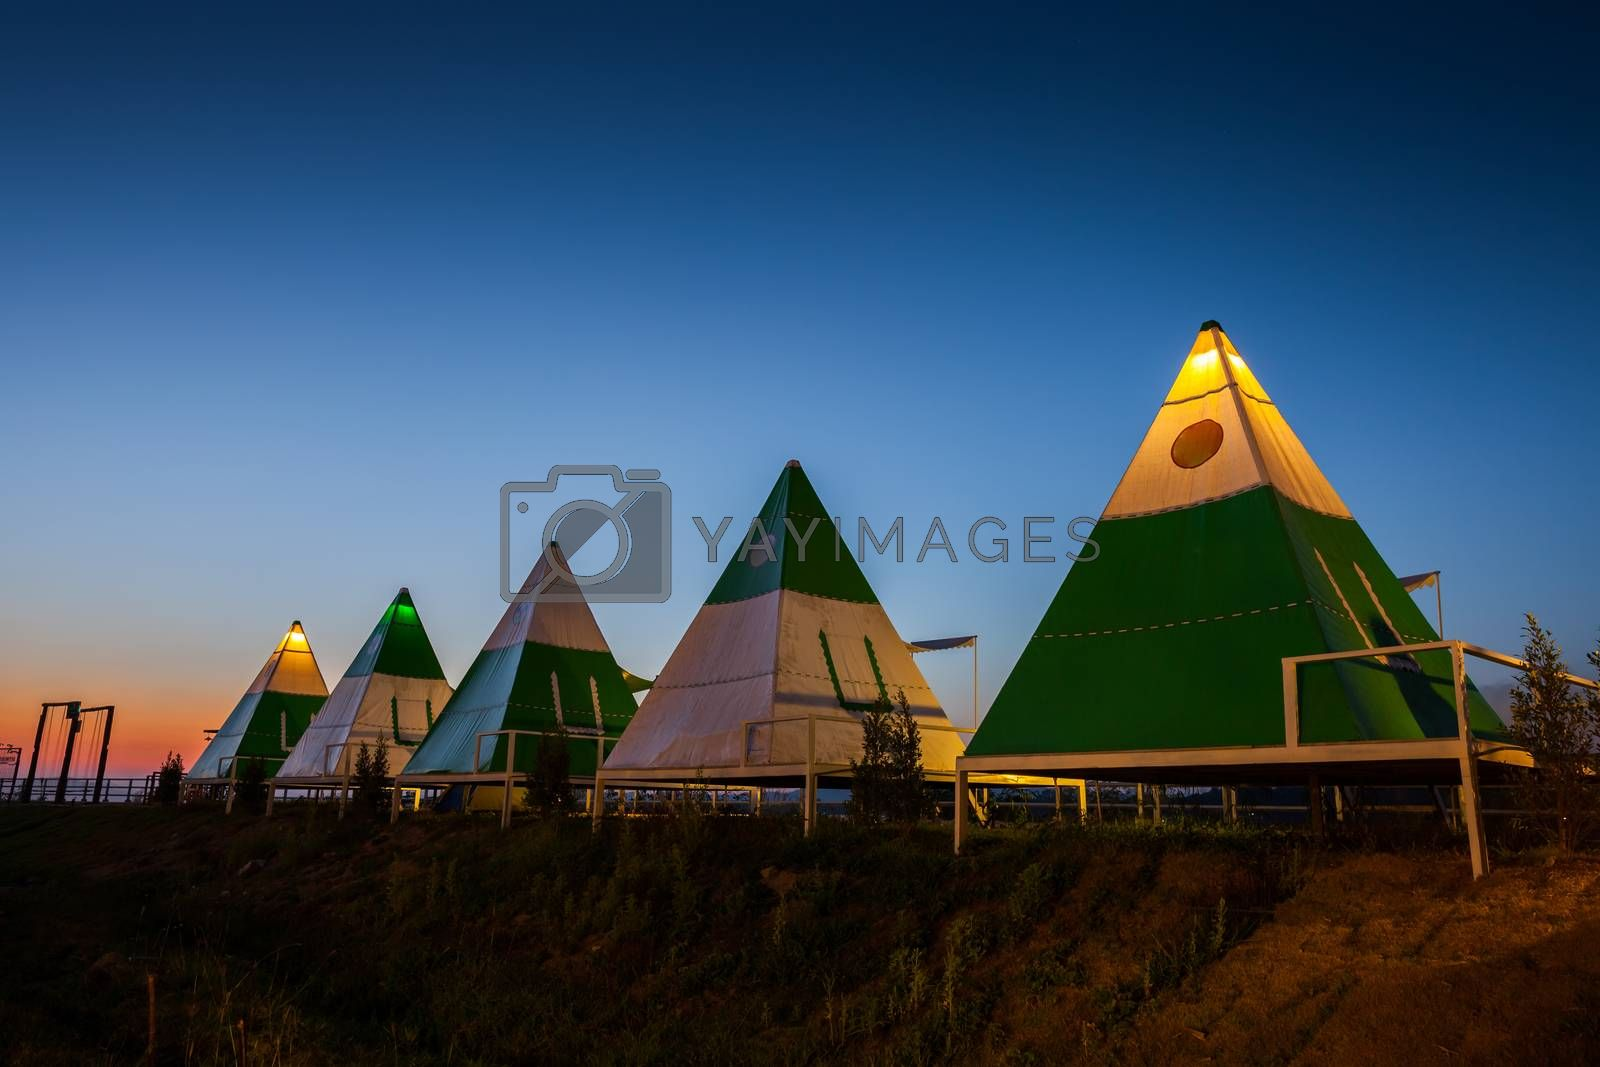 Camping tent on green grass field under clear sky at night time